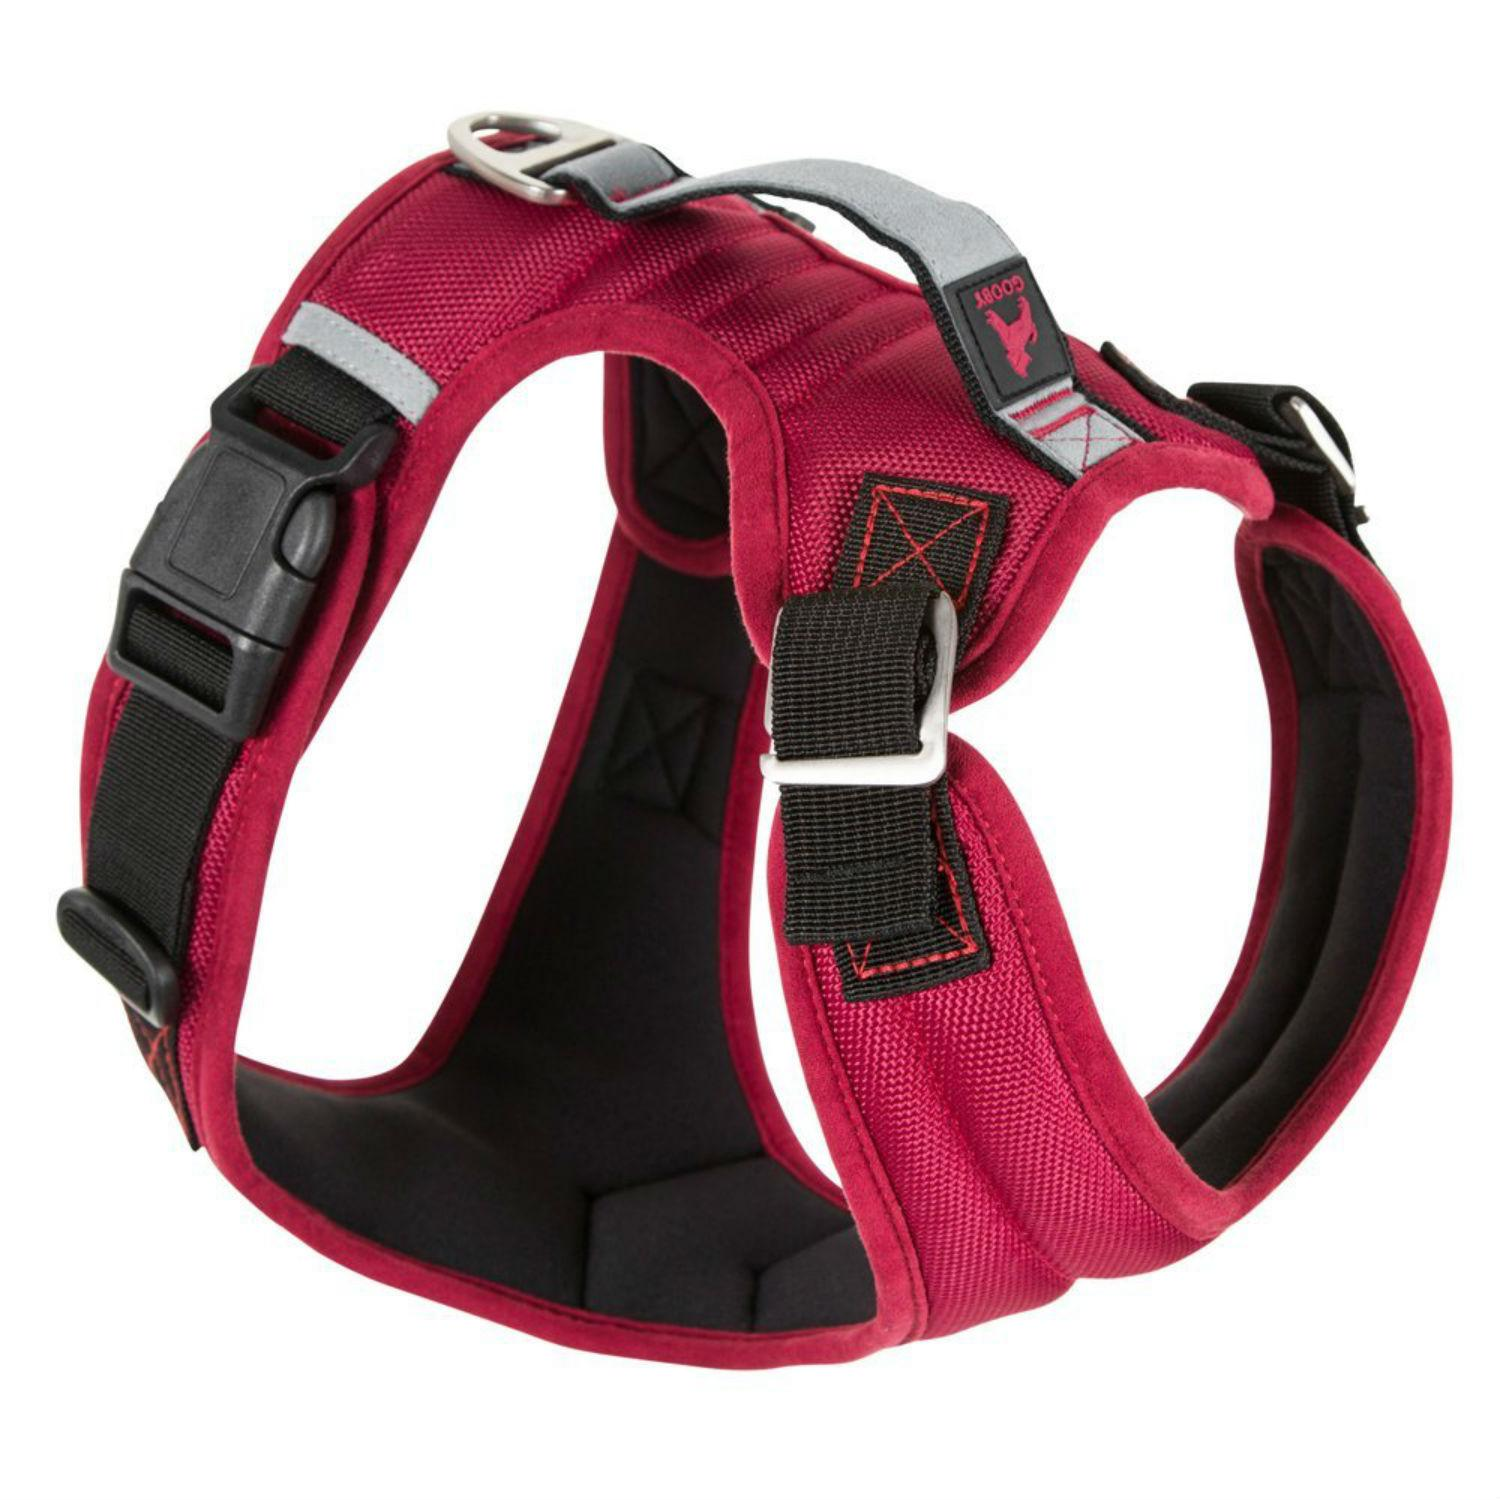 Gooby Pioneer Dog Harness - Red